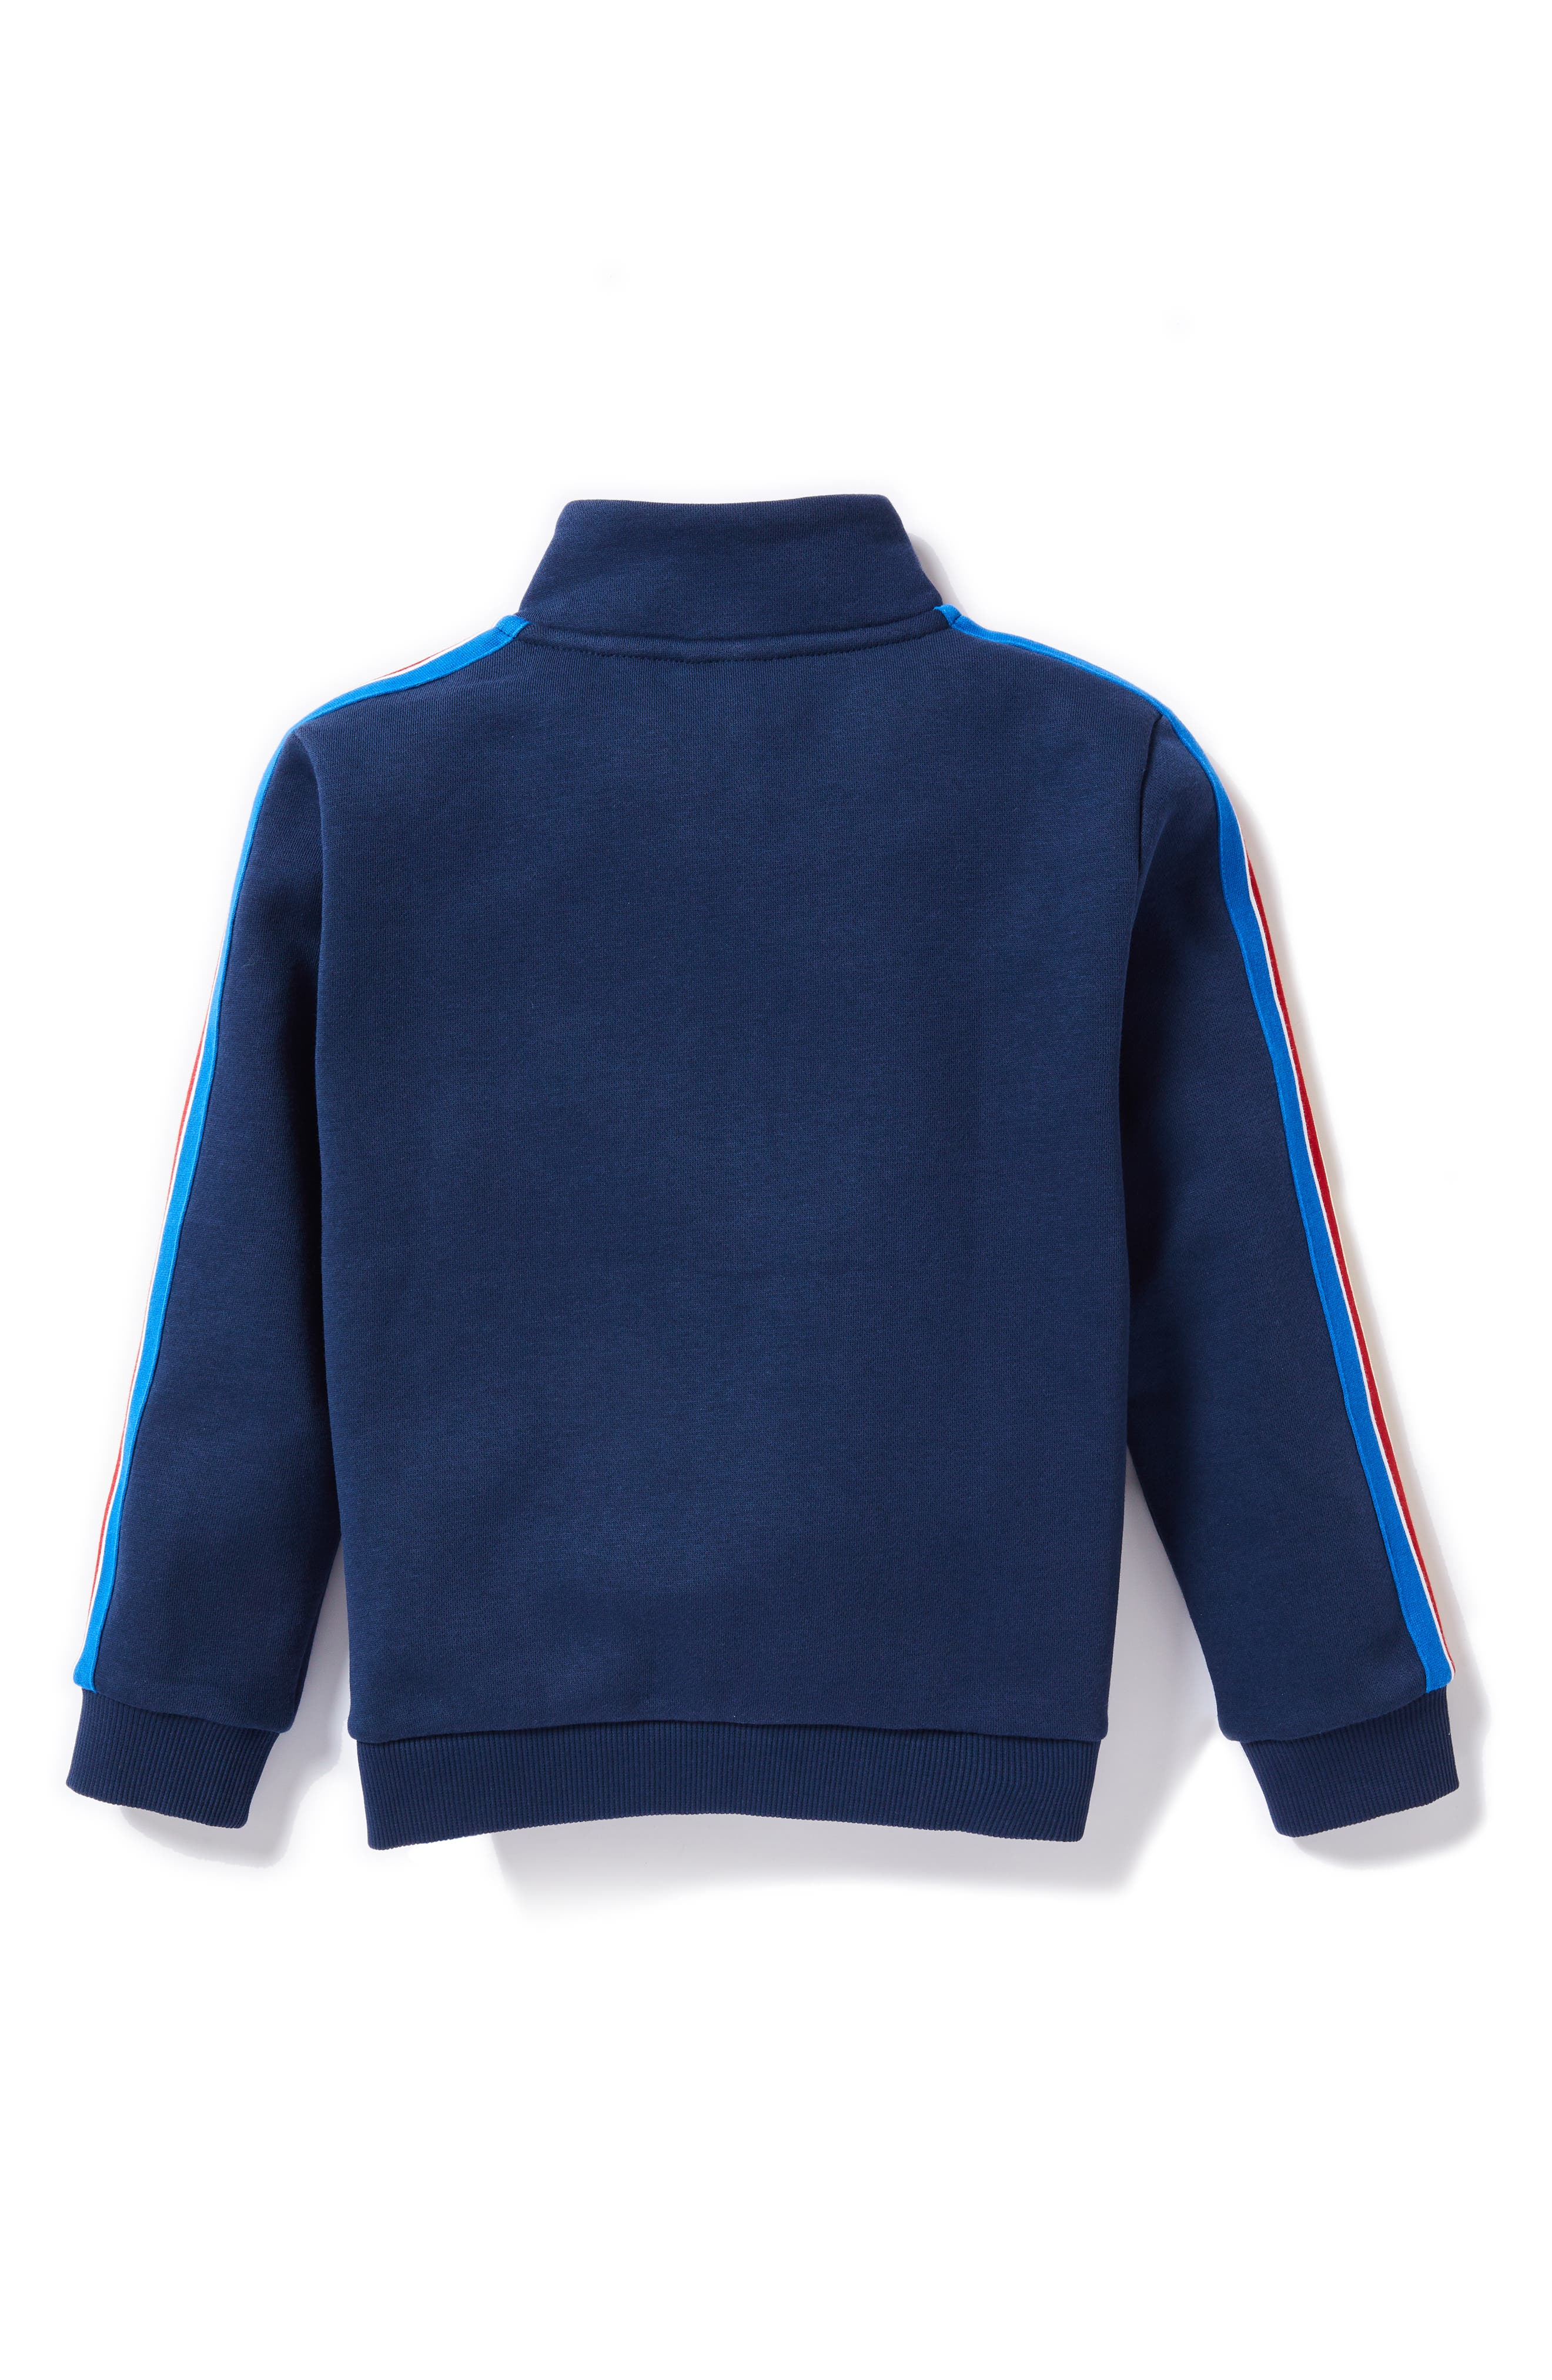 Athleisure Zip Jacket,                             Alternate thumbnail 2, color,                             NAVY BLUE